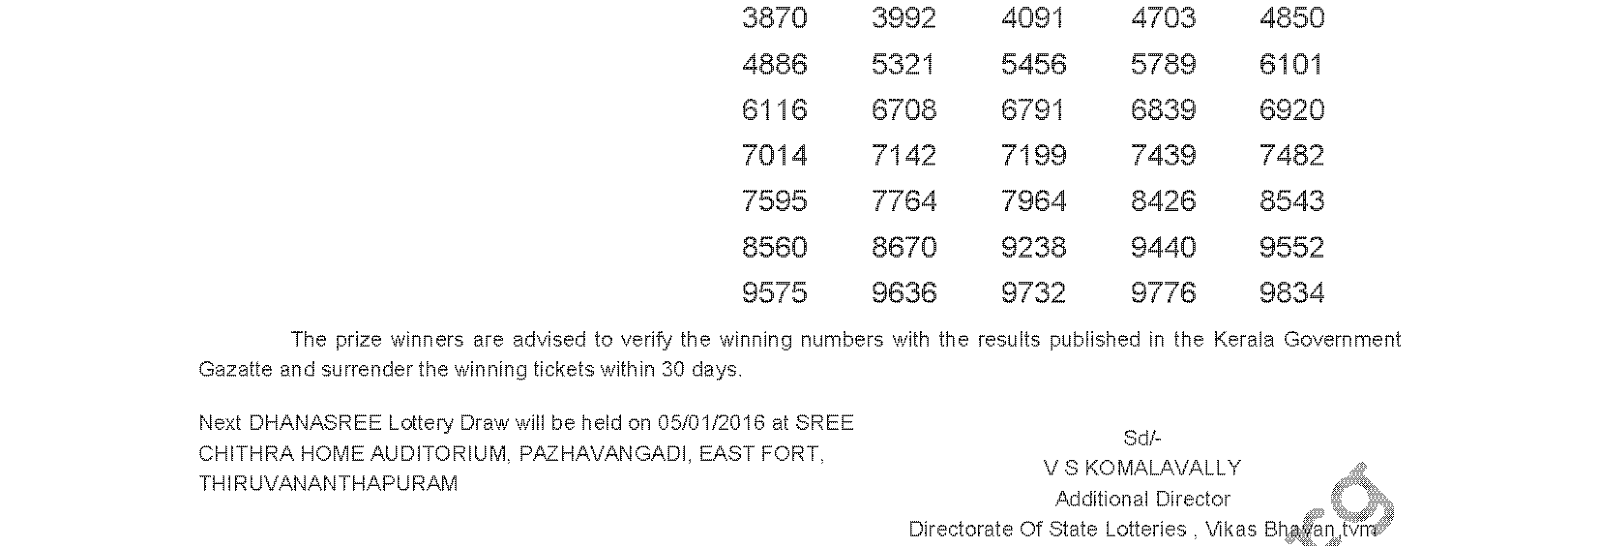 DHANASREE Lottery DS 218 Result 29-12-2015